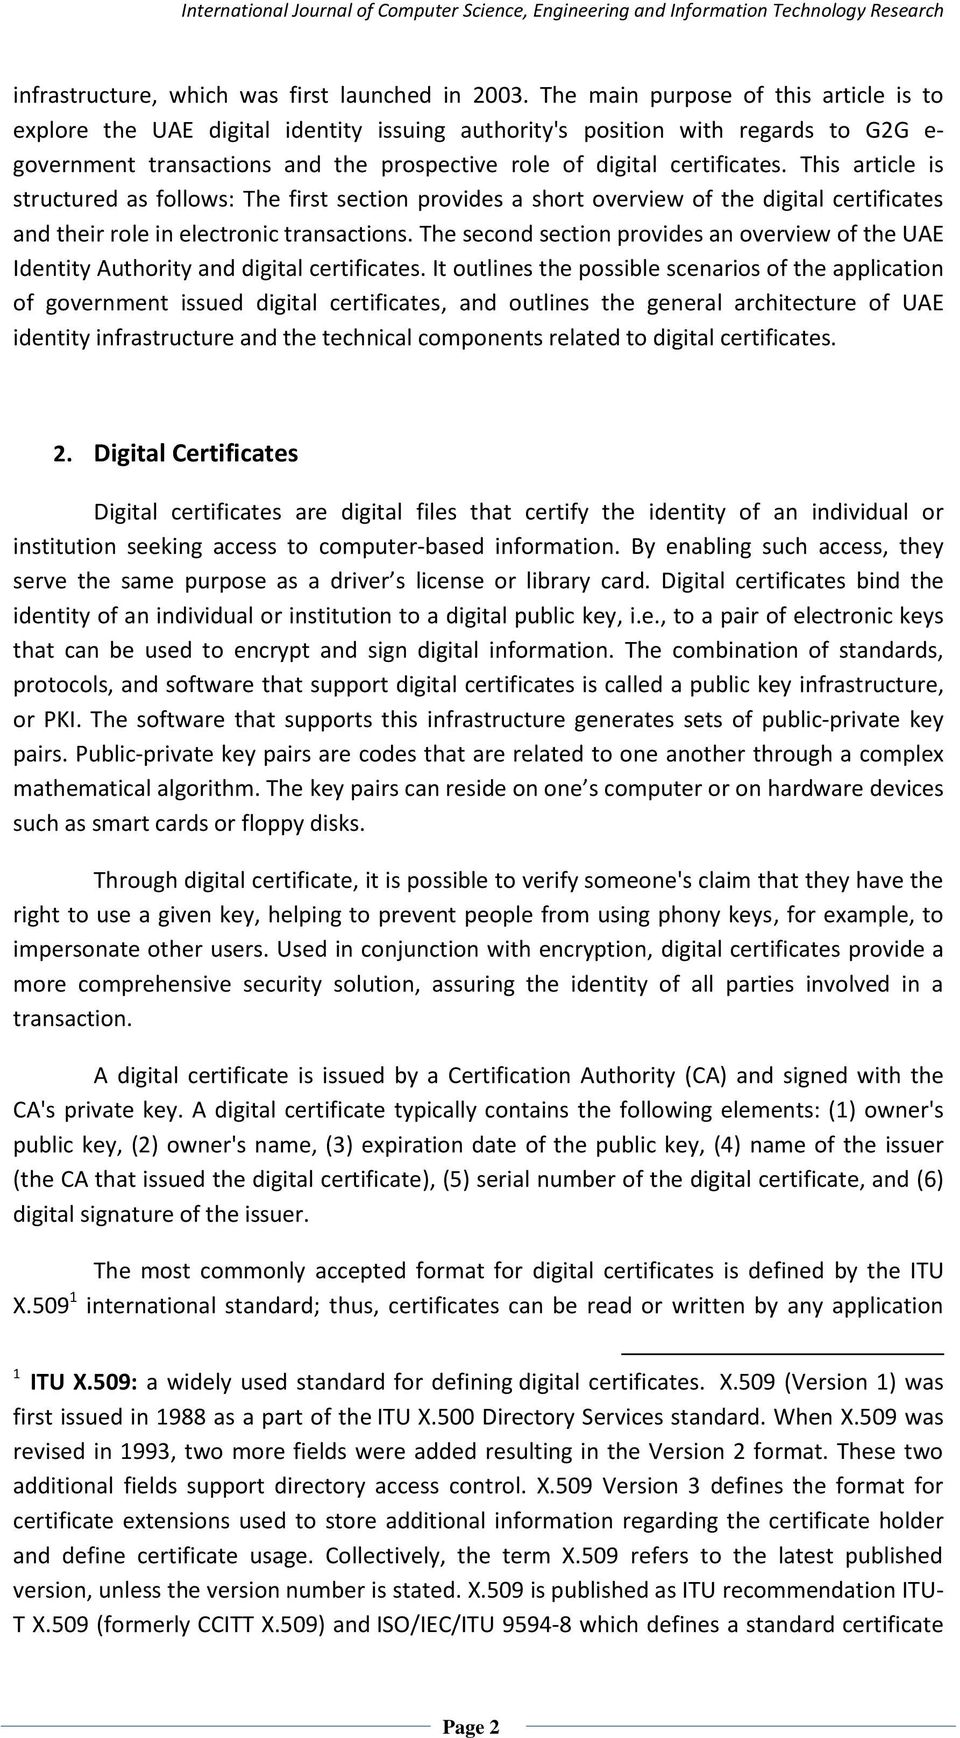 The Role Of Digital Certificates In Contemporary Government Systems